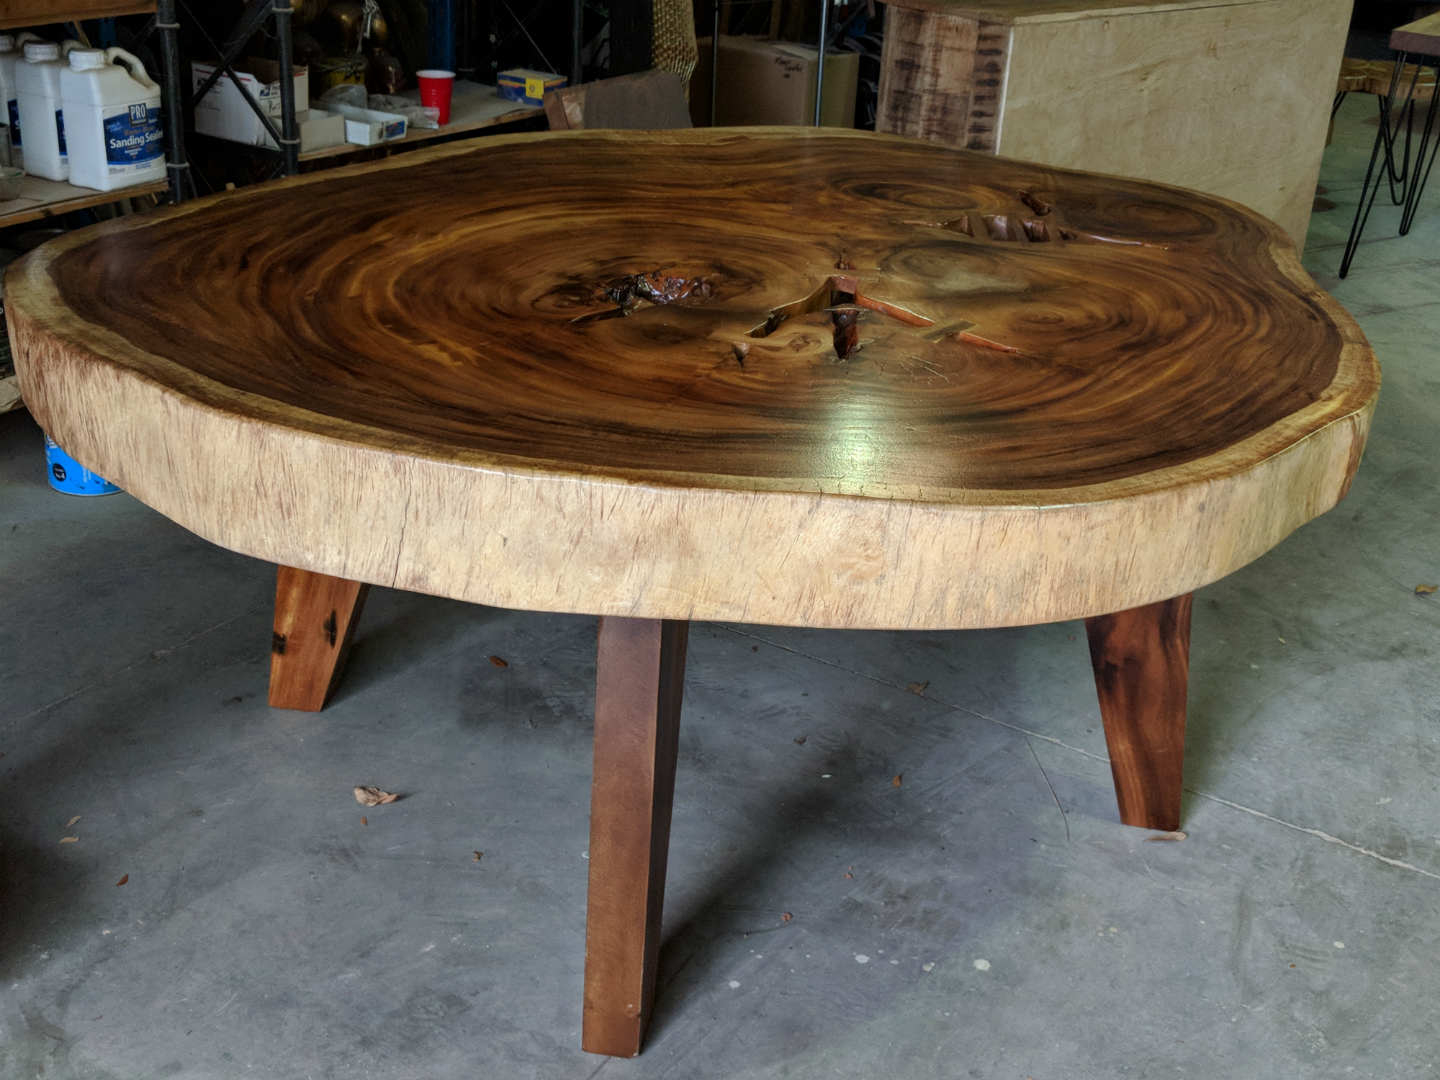 round slab dining tables decor direct whole wood slice accent table you find just the right already finished and ready otherwise can choose your own live edge slabs style them for